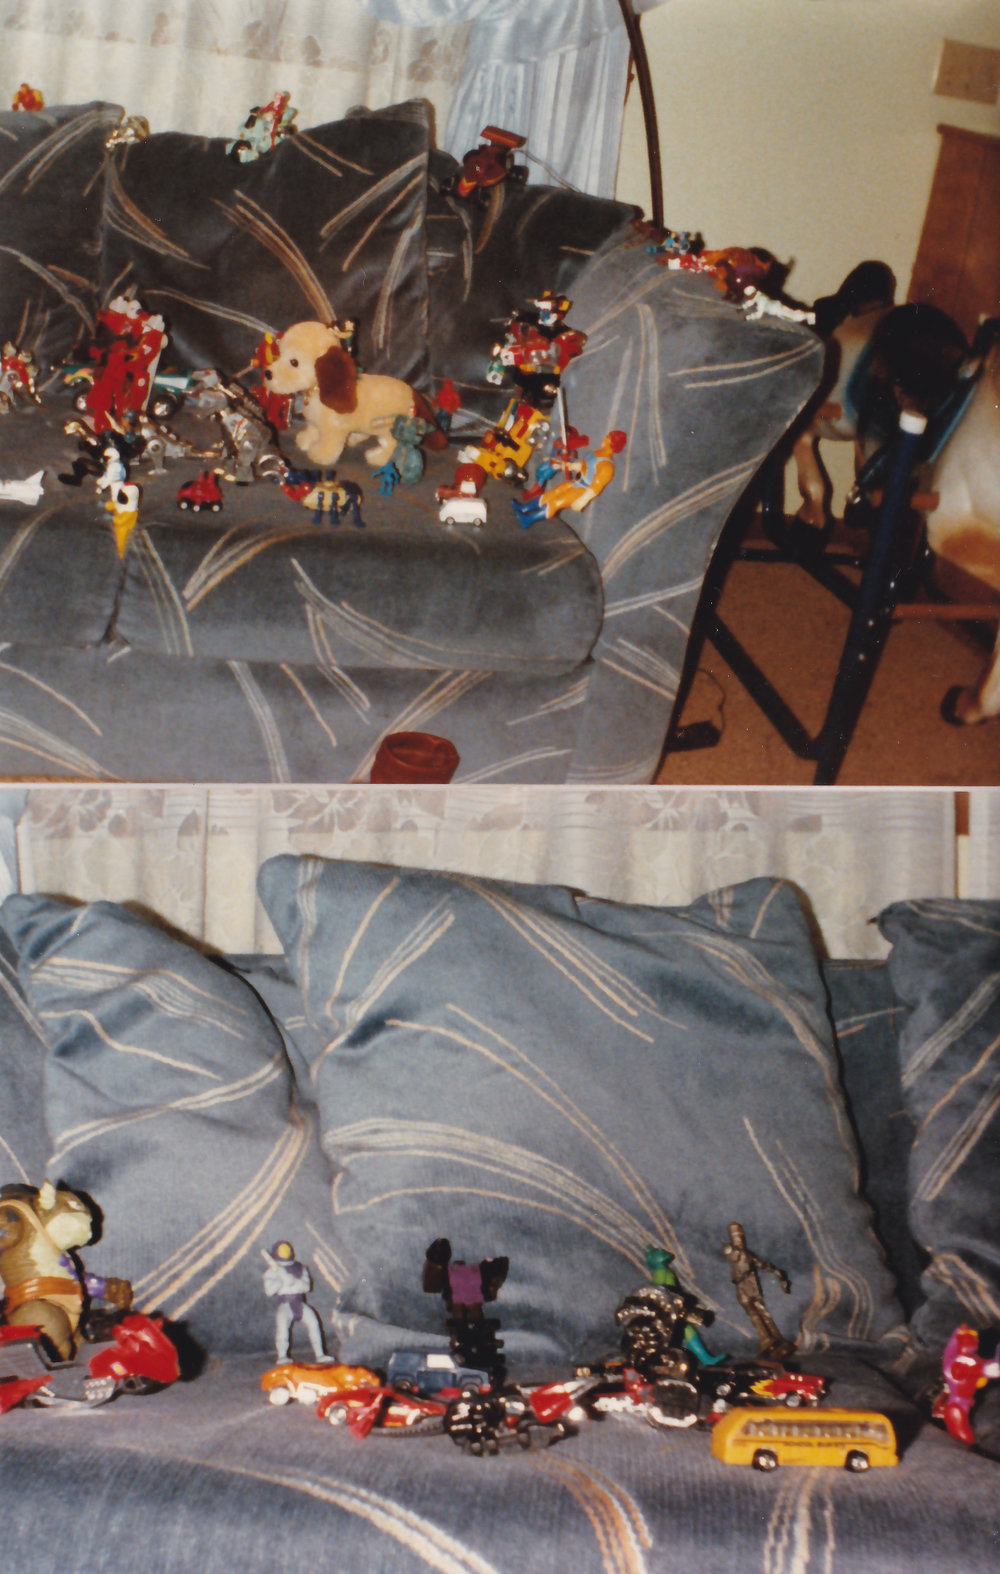 Ryan's Great Couch Wars of 1987. There's a lot going on here, Transformers, Voltron, Star Wars, ThunderCats, M.A.S.K., and some I can't remember. Rock Lords! And notice the bouncy hobby horse in the right corner of the first picture.